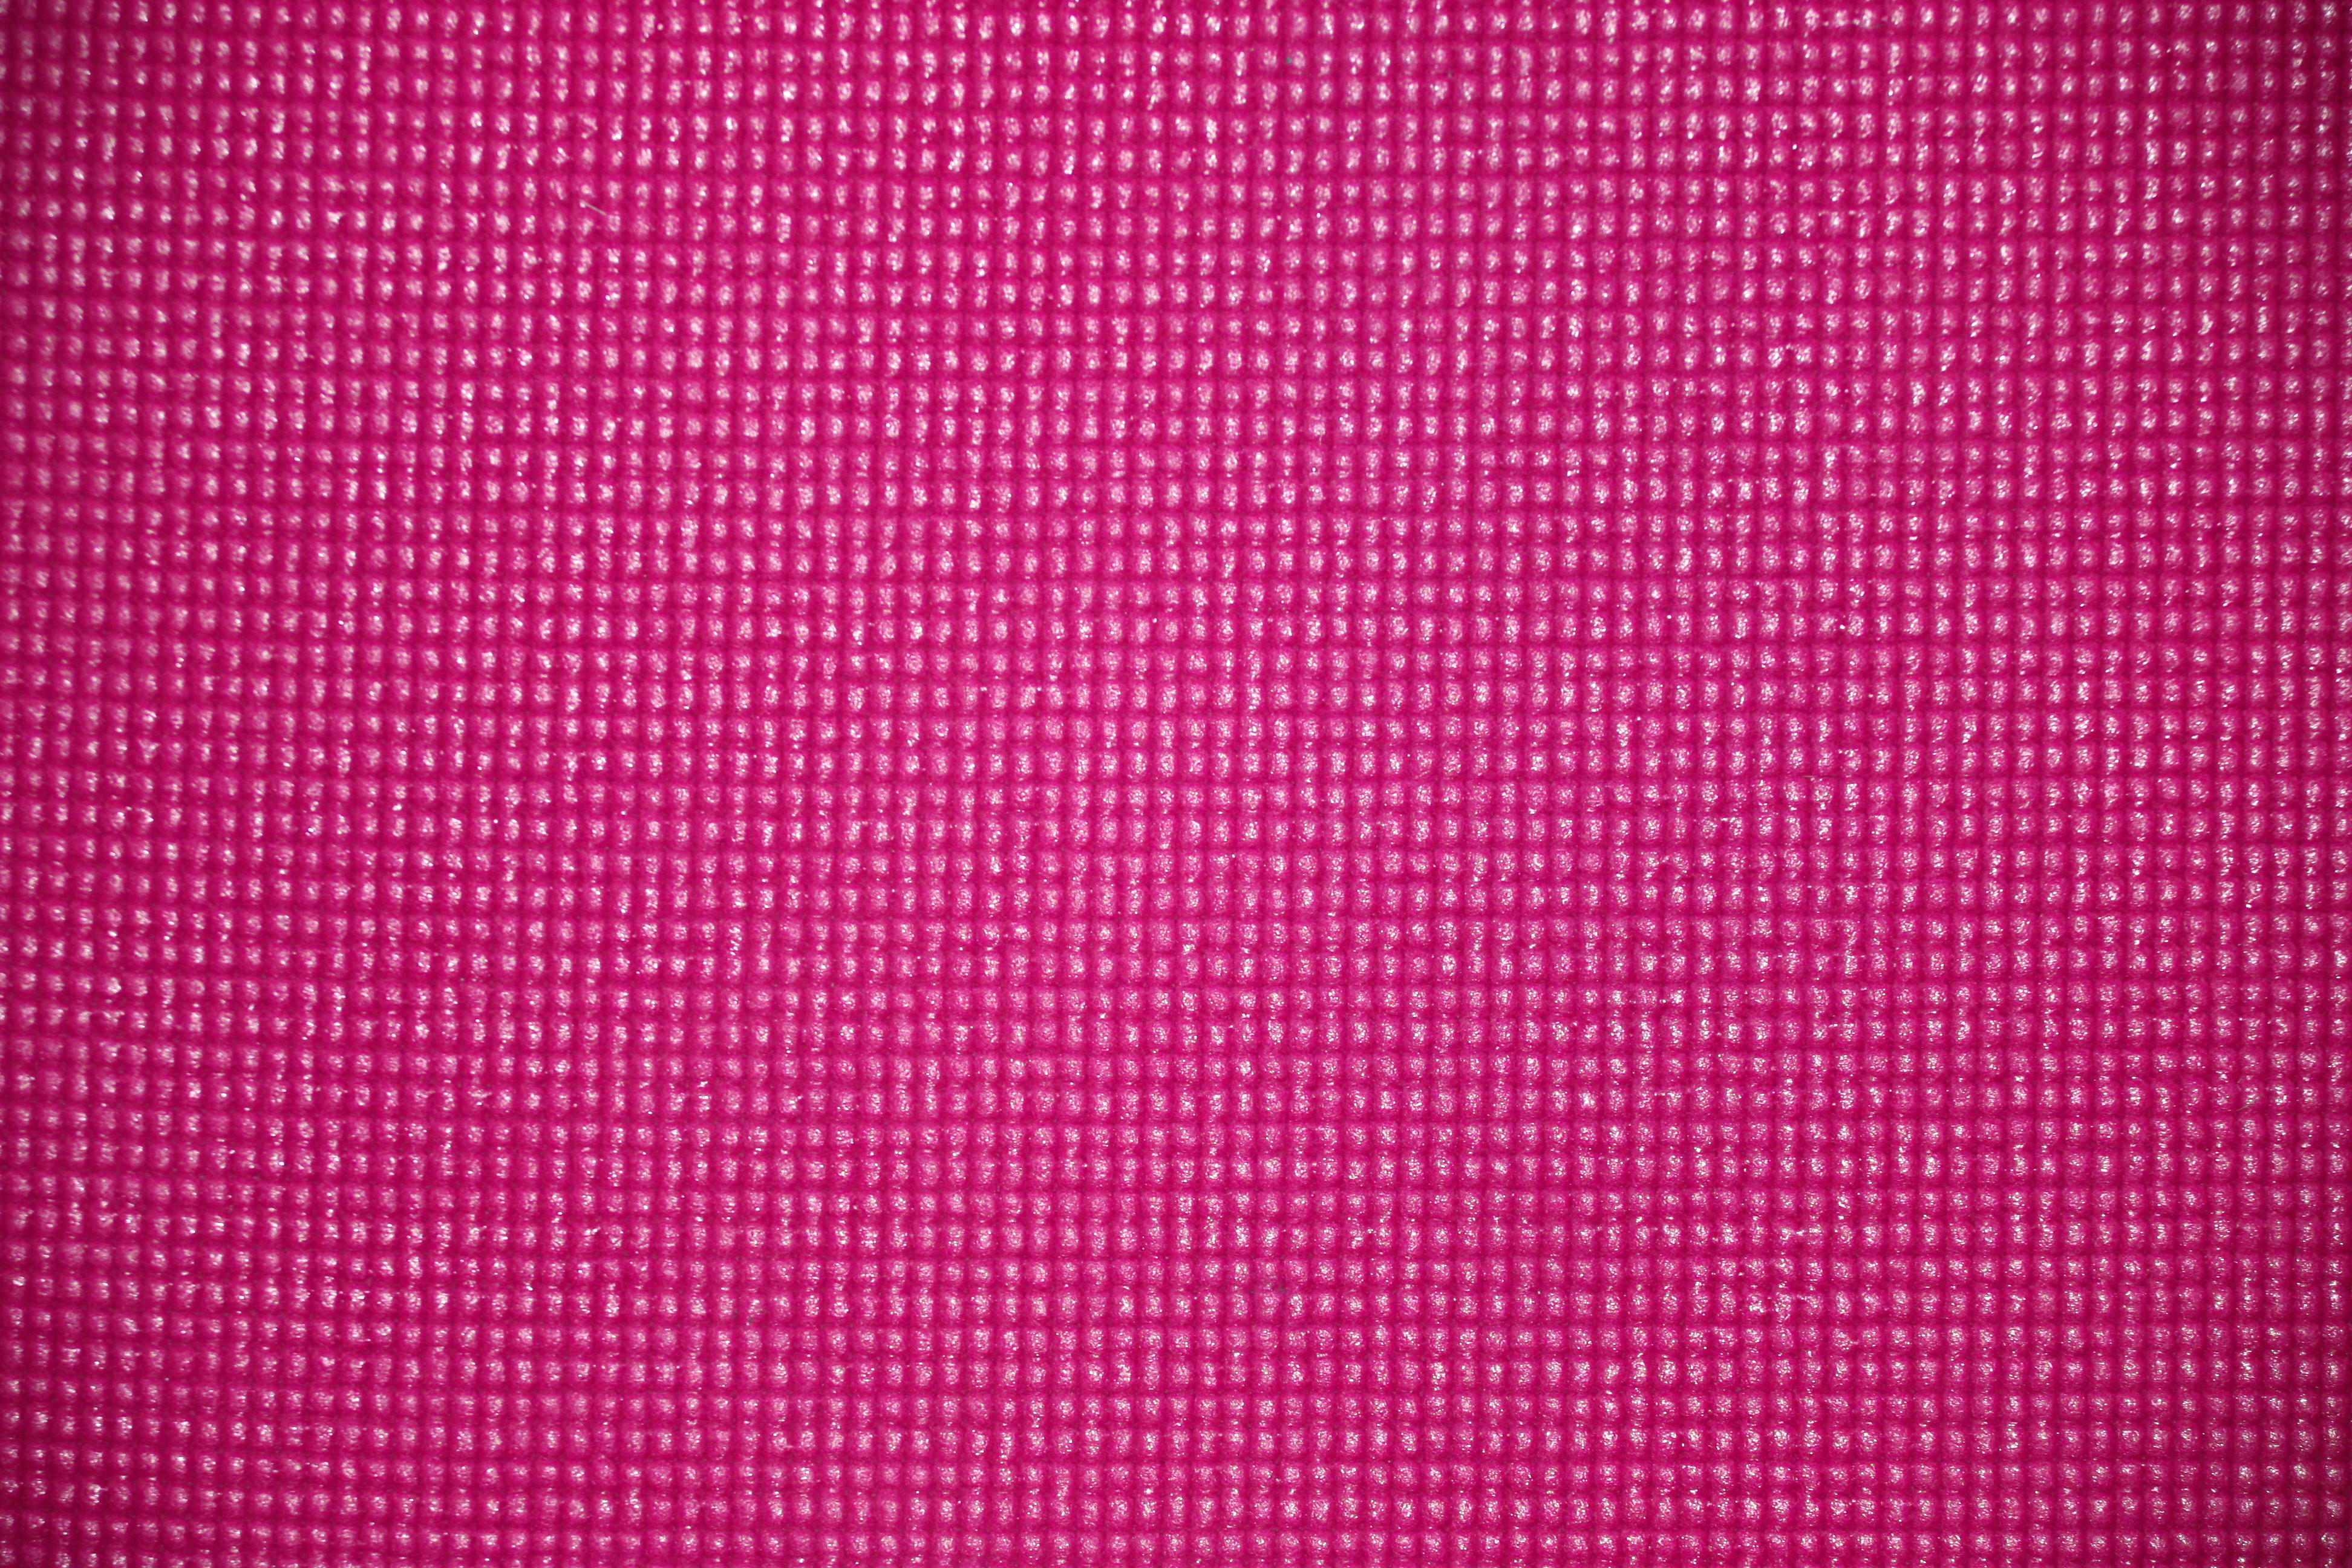 Hot Pink Yoga Exercise Mat Texture Picture Free